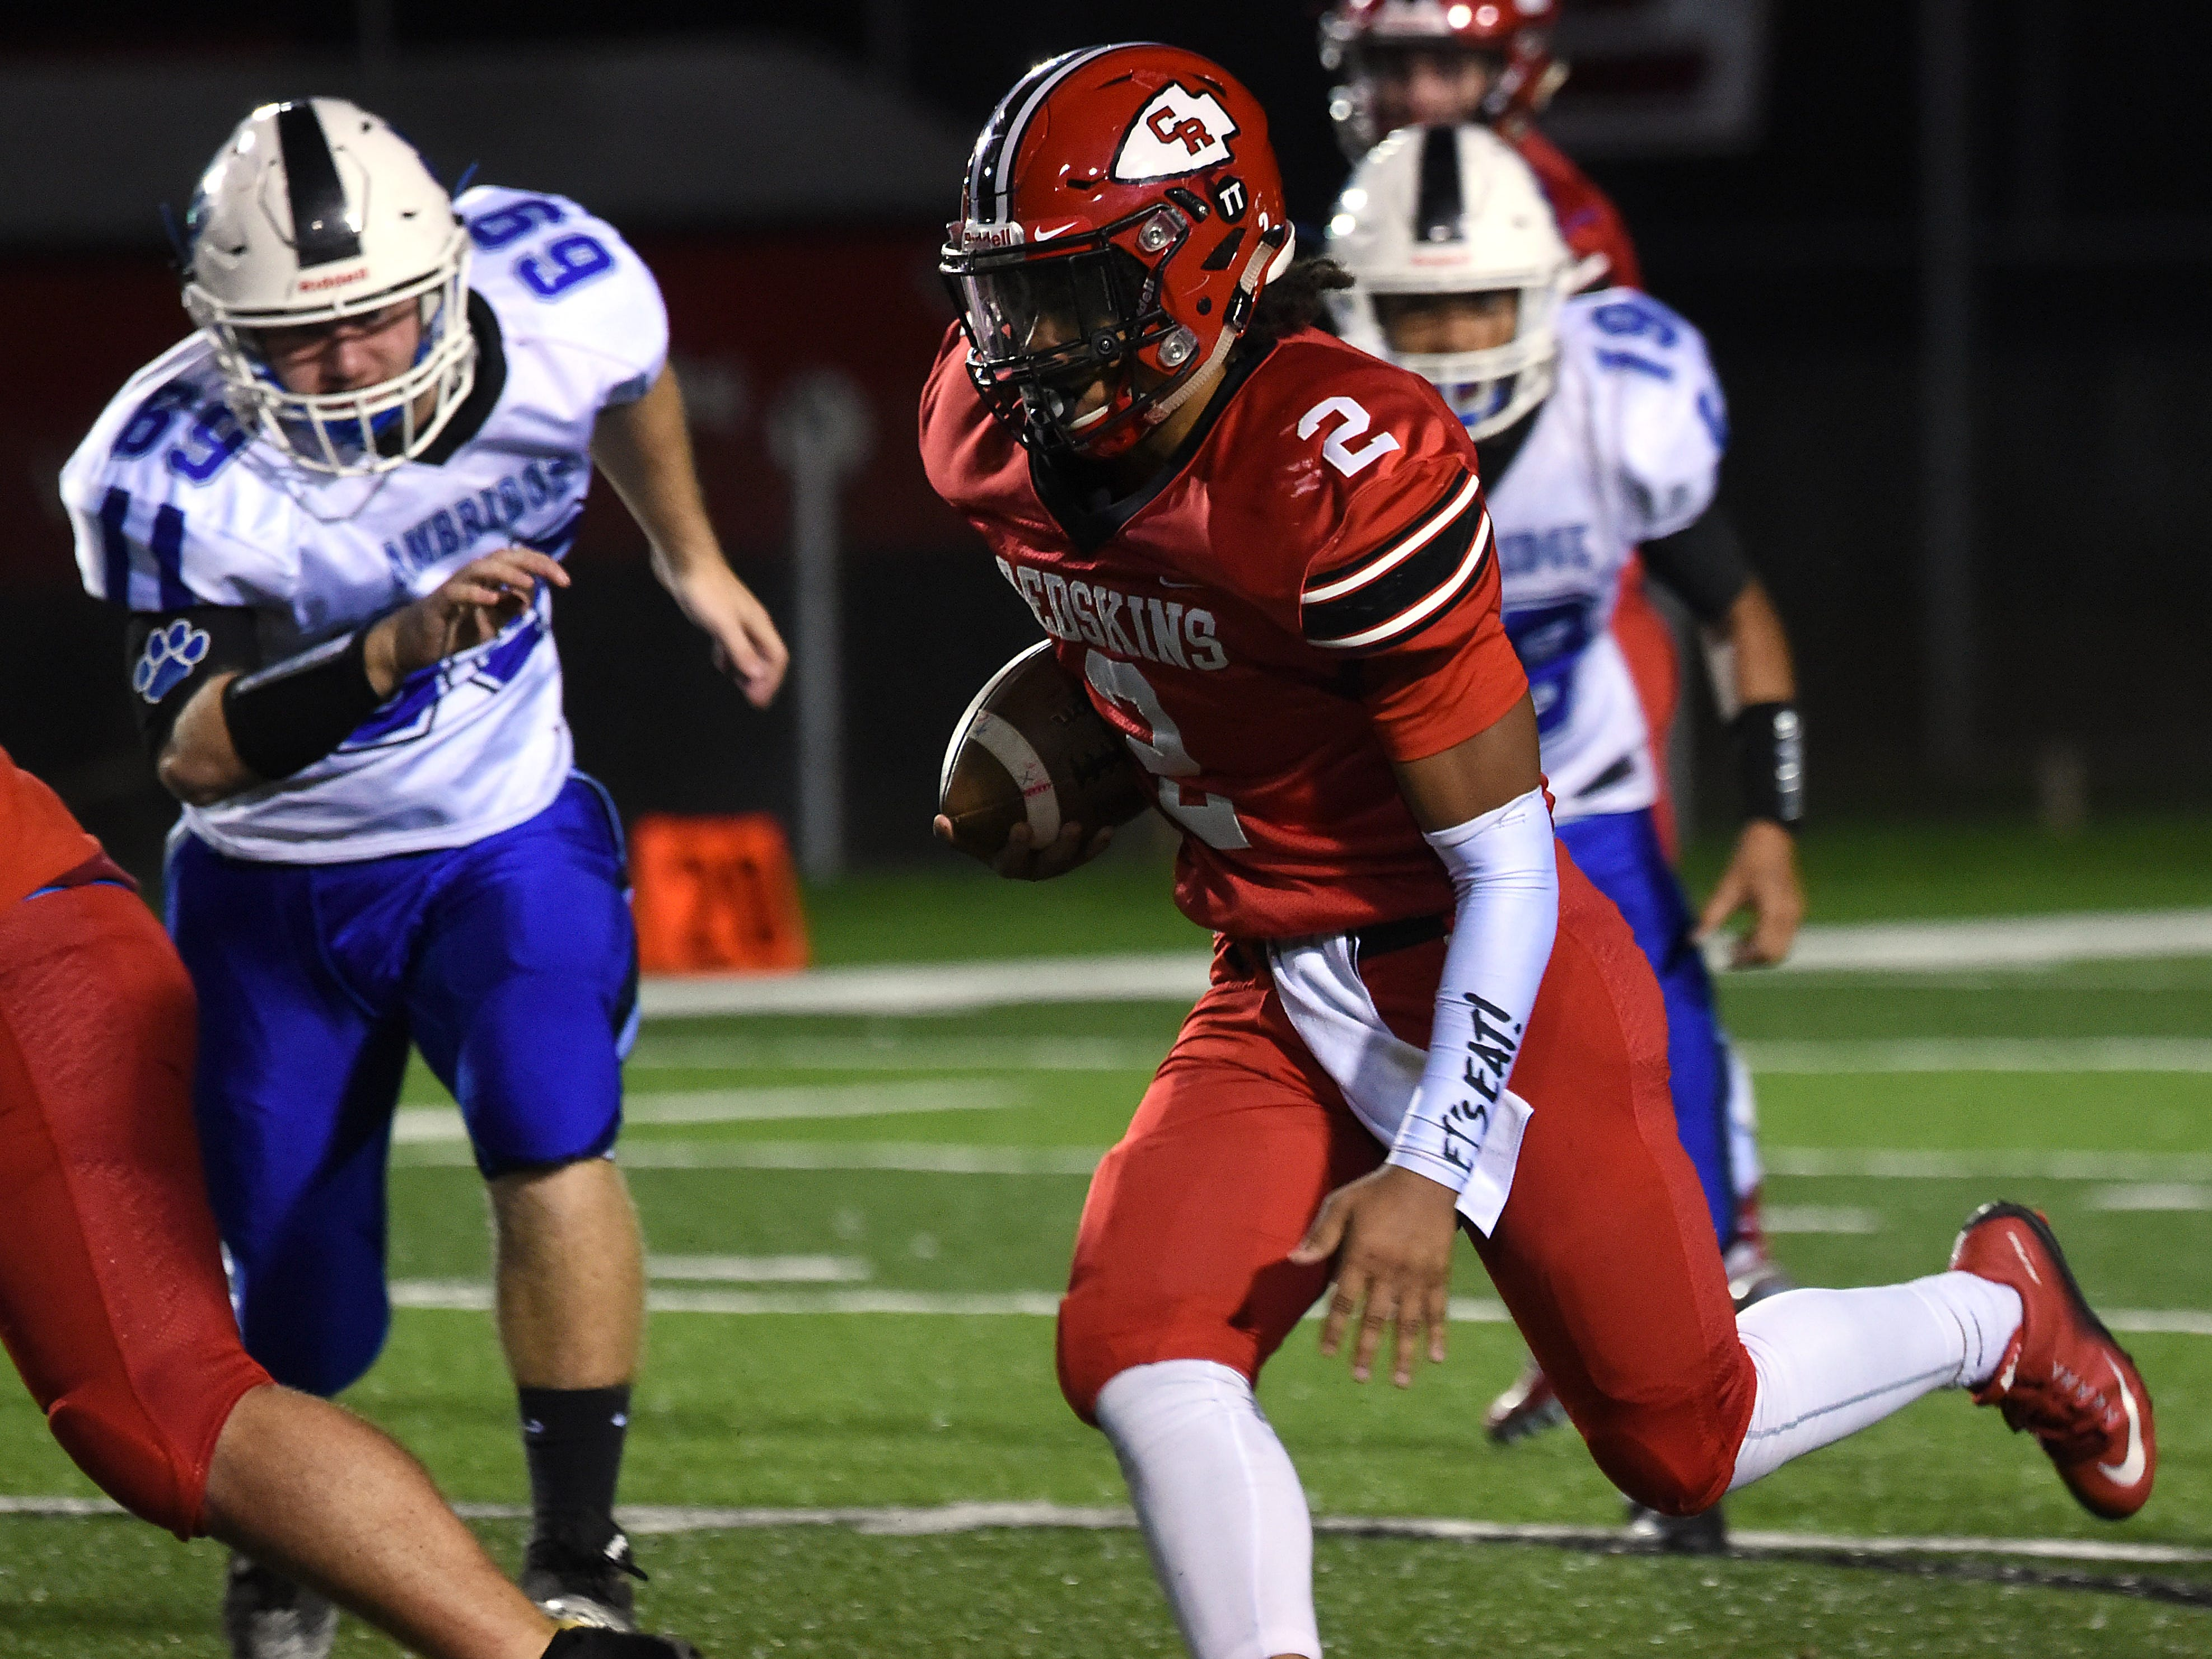 Coshocton junior Cameron Johns carries the ball during their homecoming game on Friday, Oct. 12, 2018. Coshocton lost 33-22.